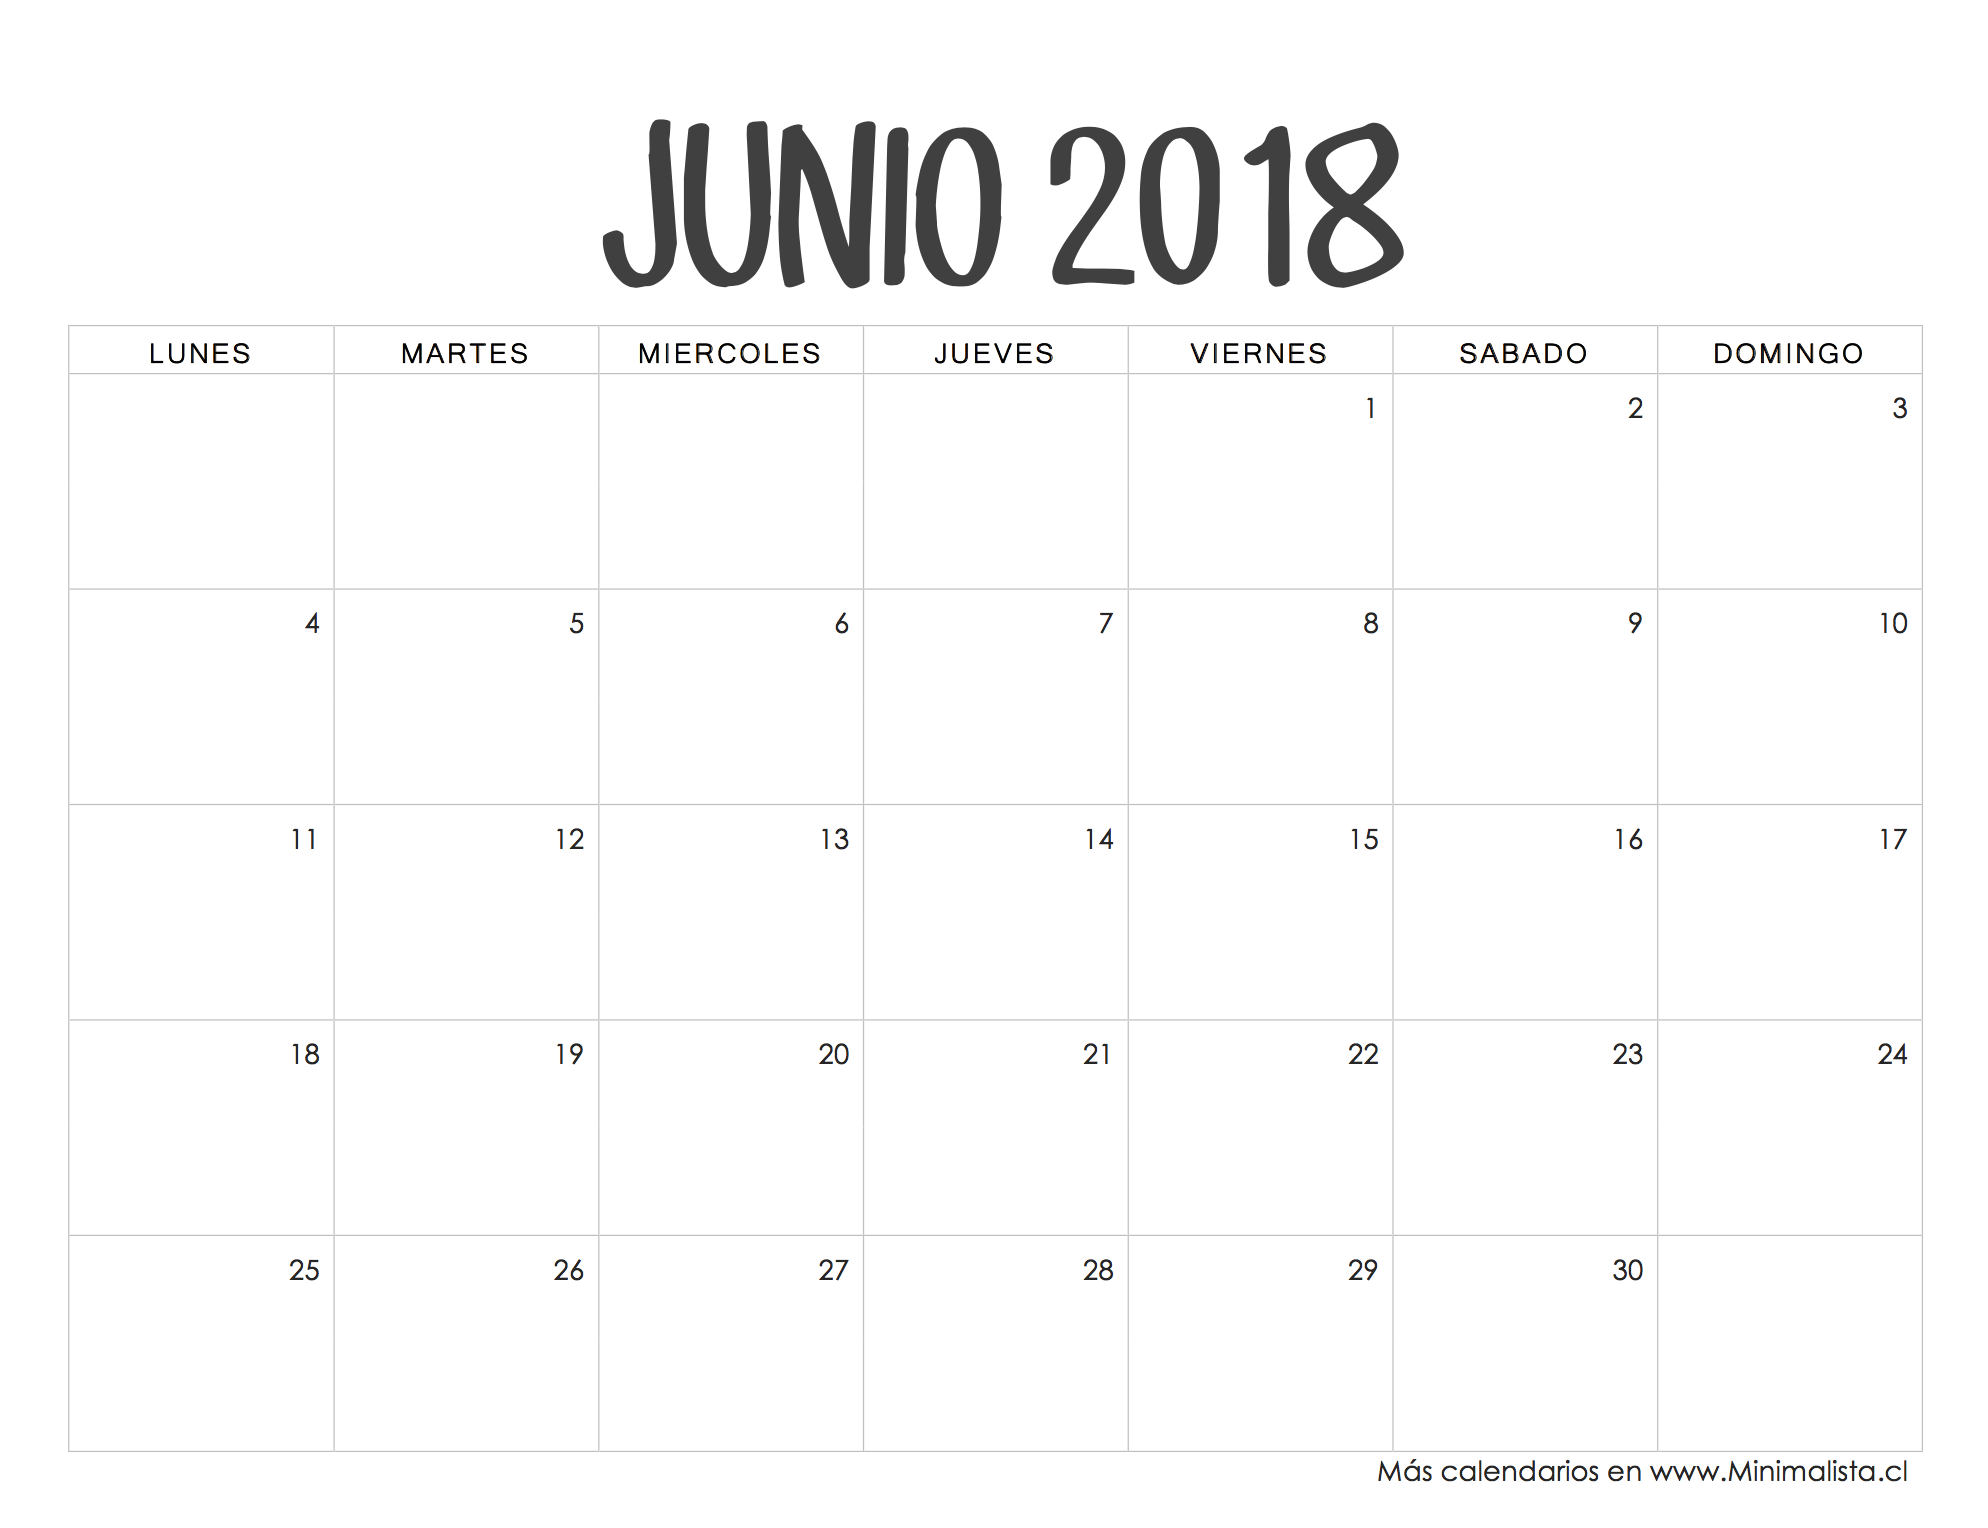 Calendario Escolar Madrid 202018.Calendario Junio 2018 Apuntes Calendario 2018 Para Imprimir